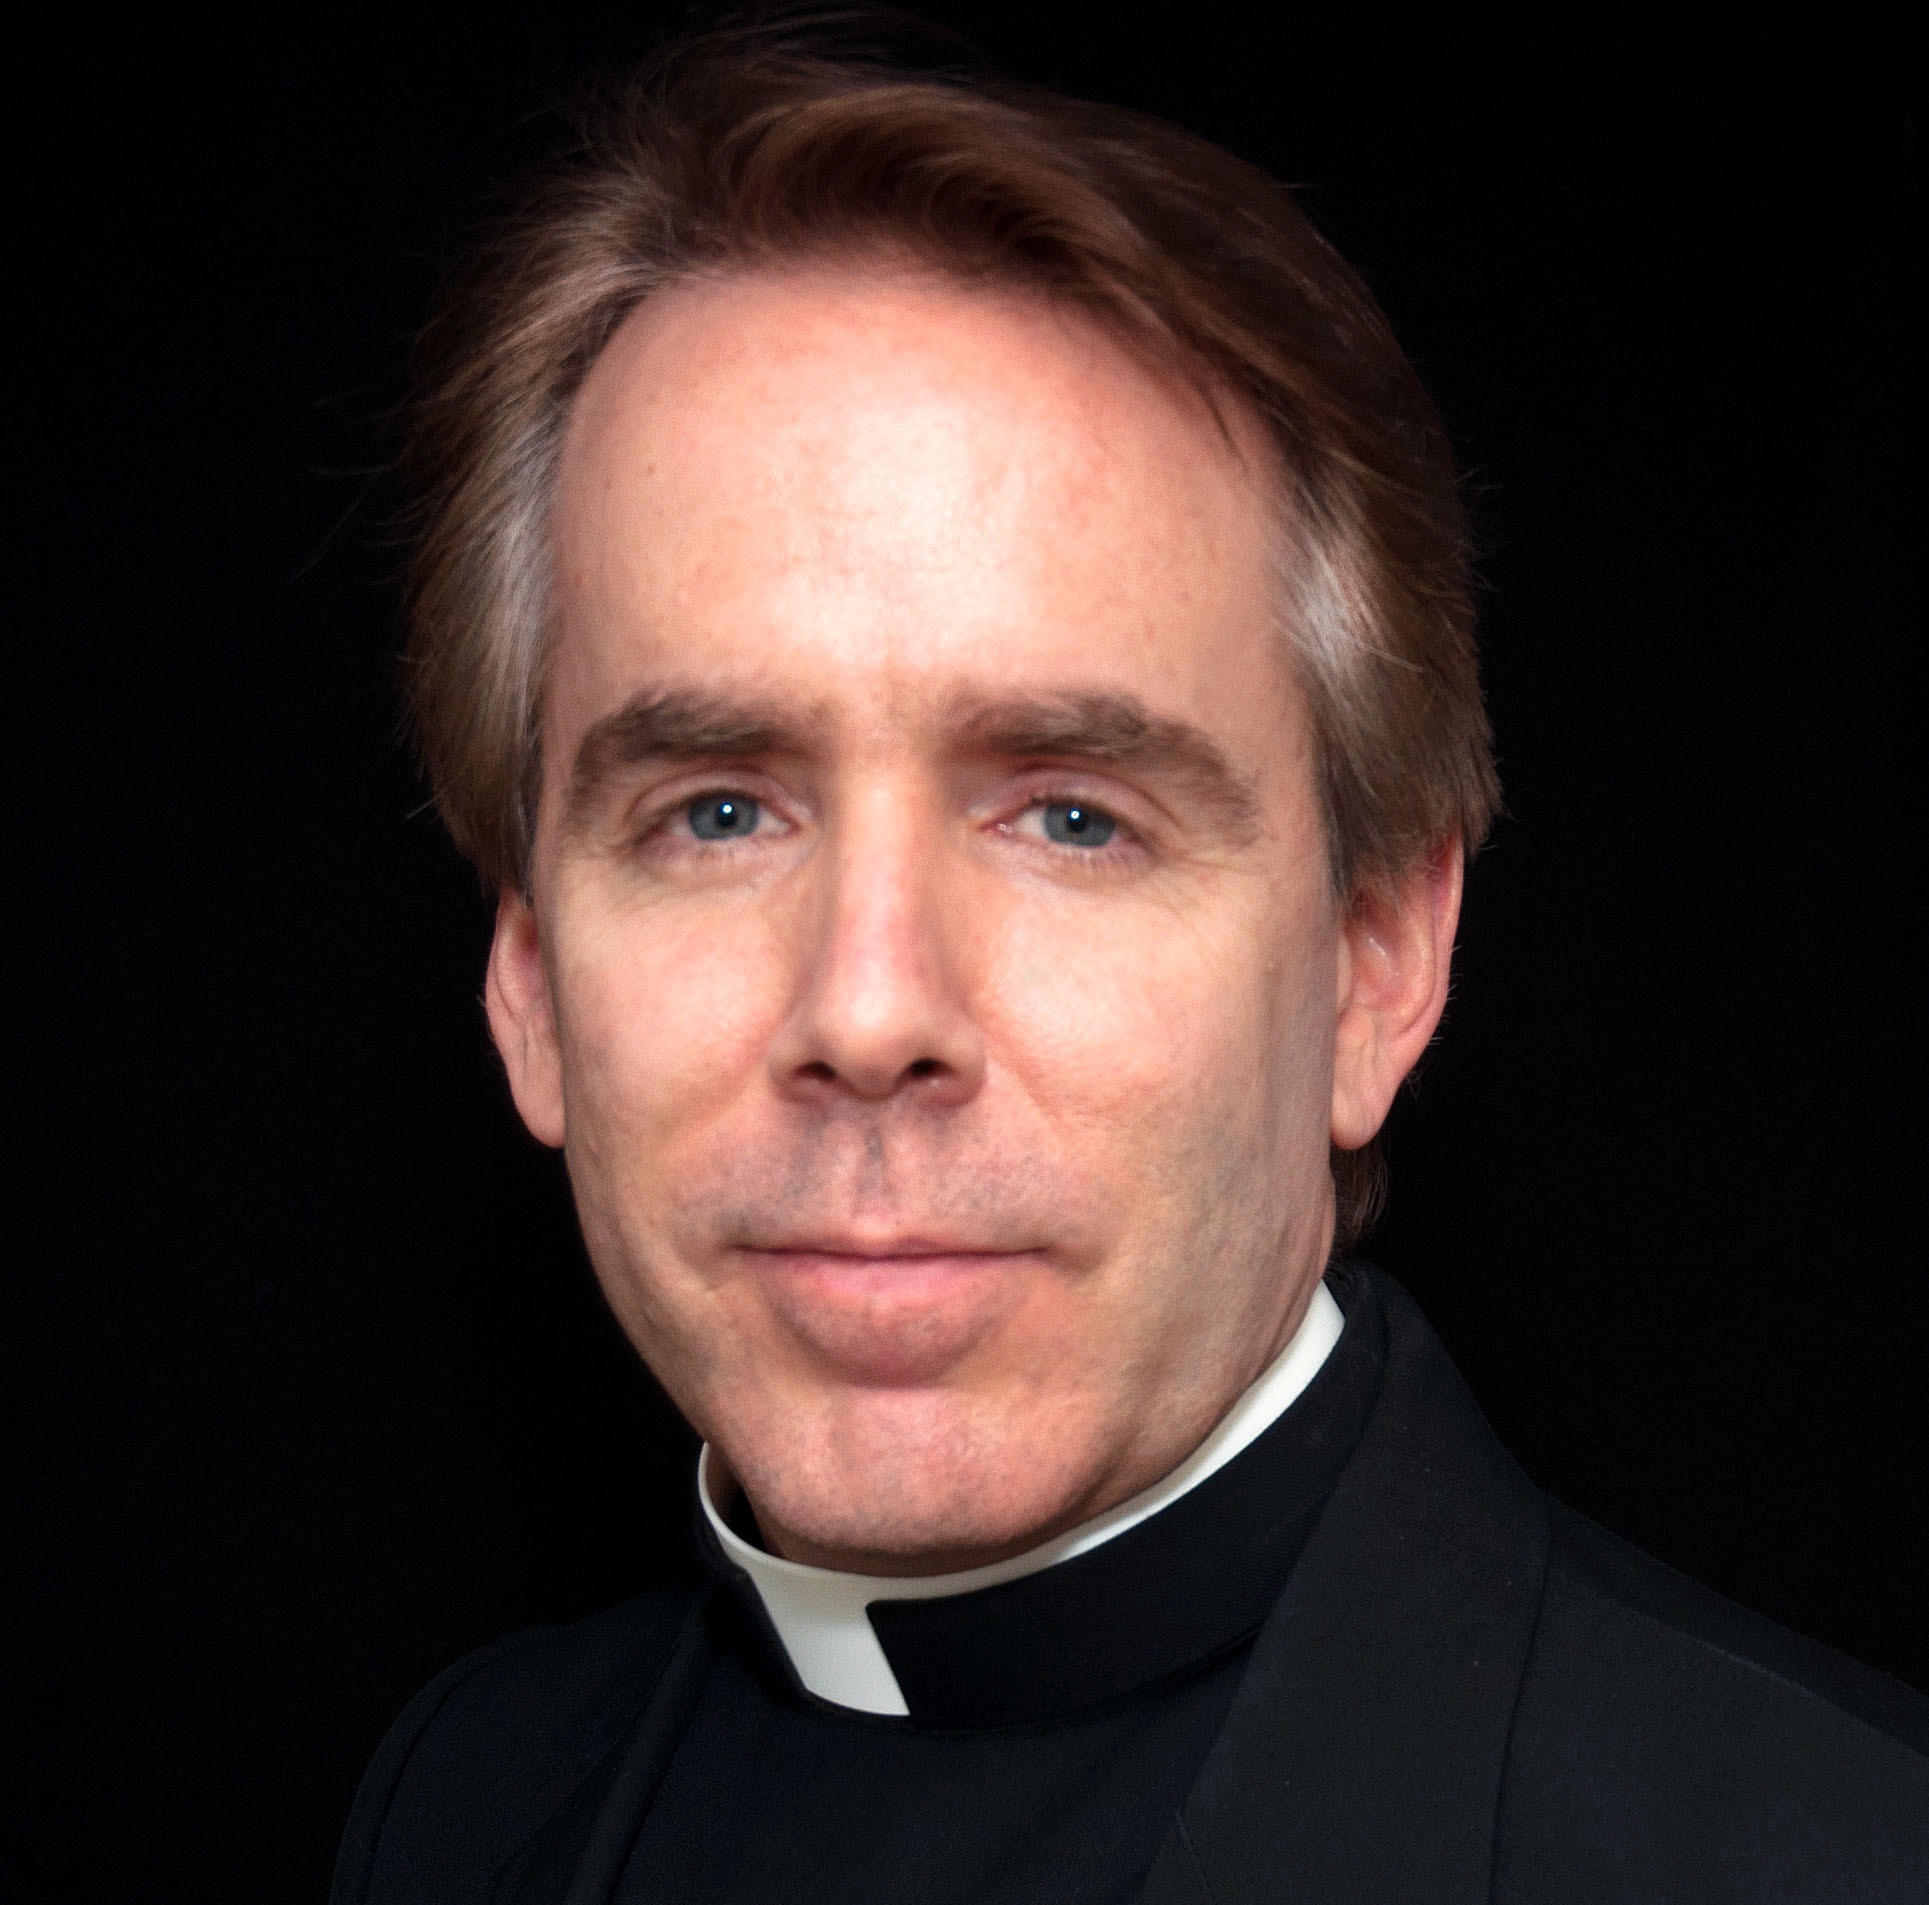 Rev. T. Kevin Corcoran